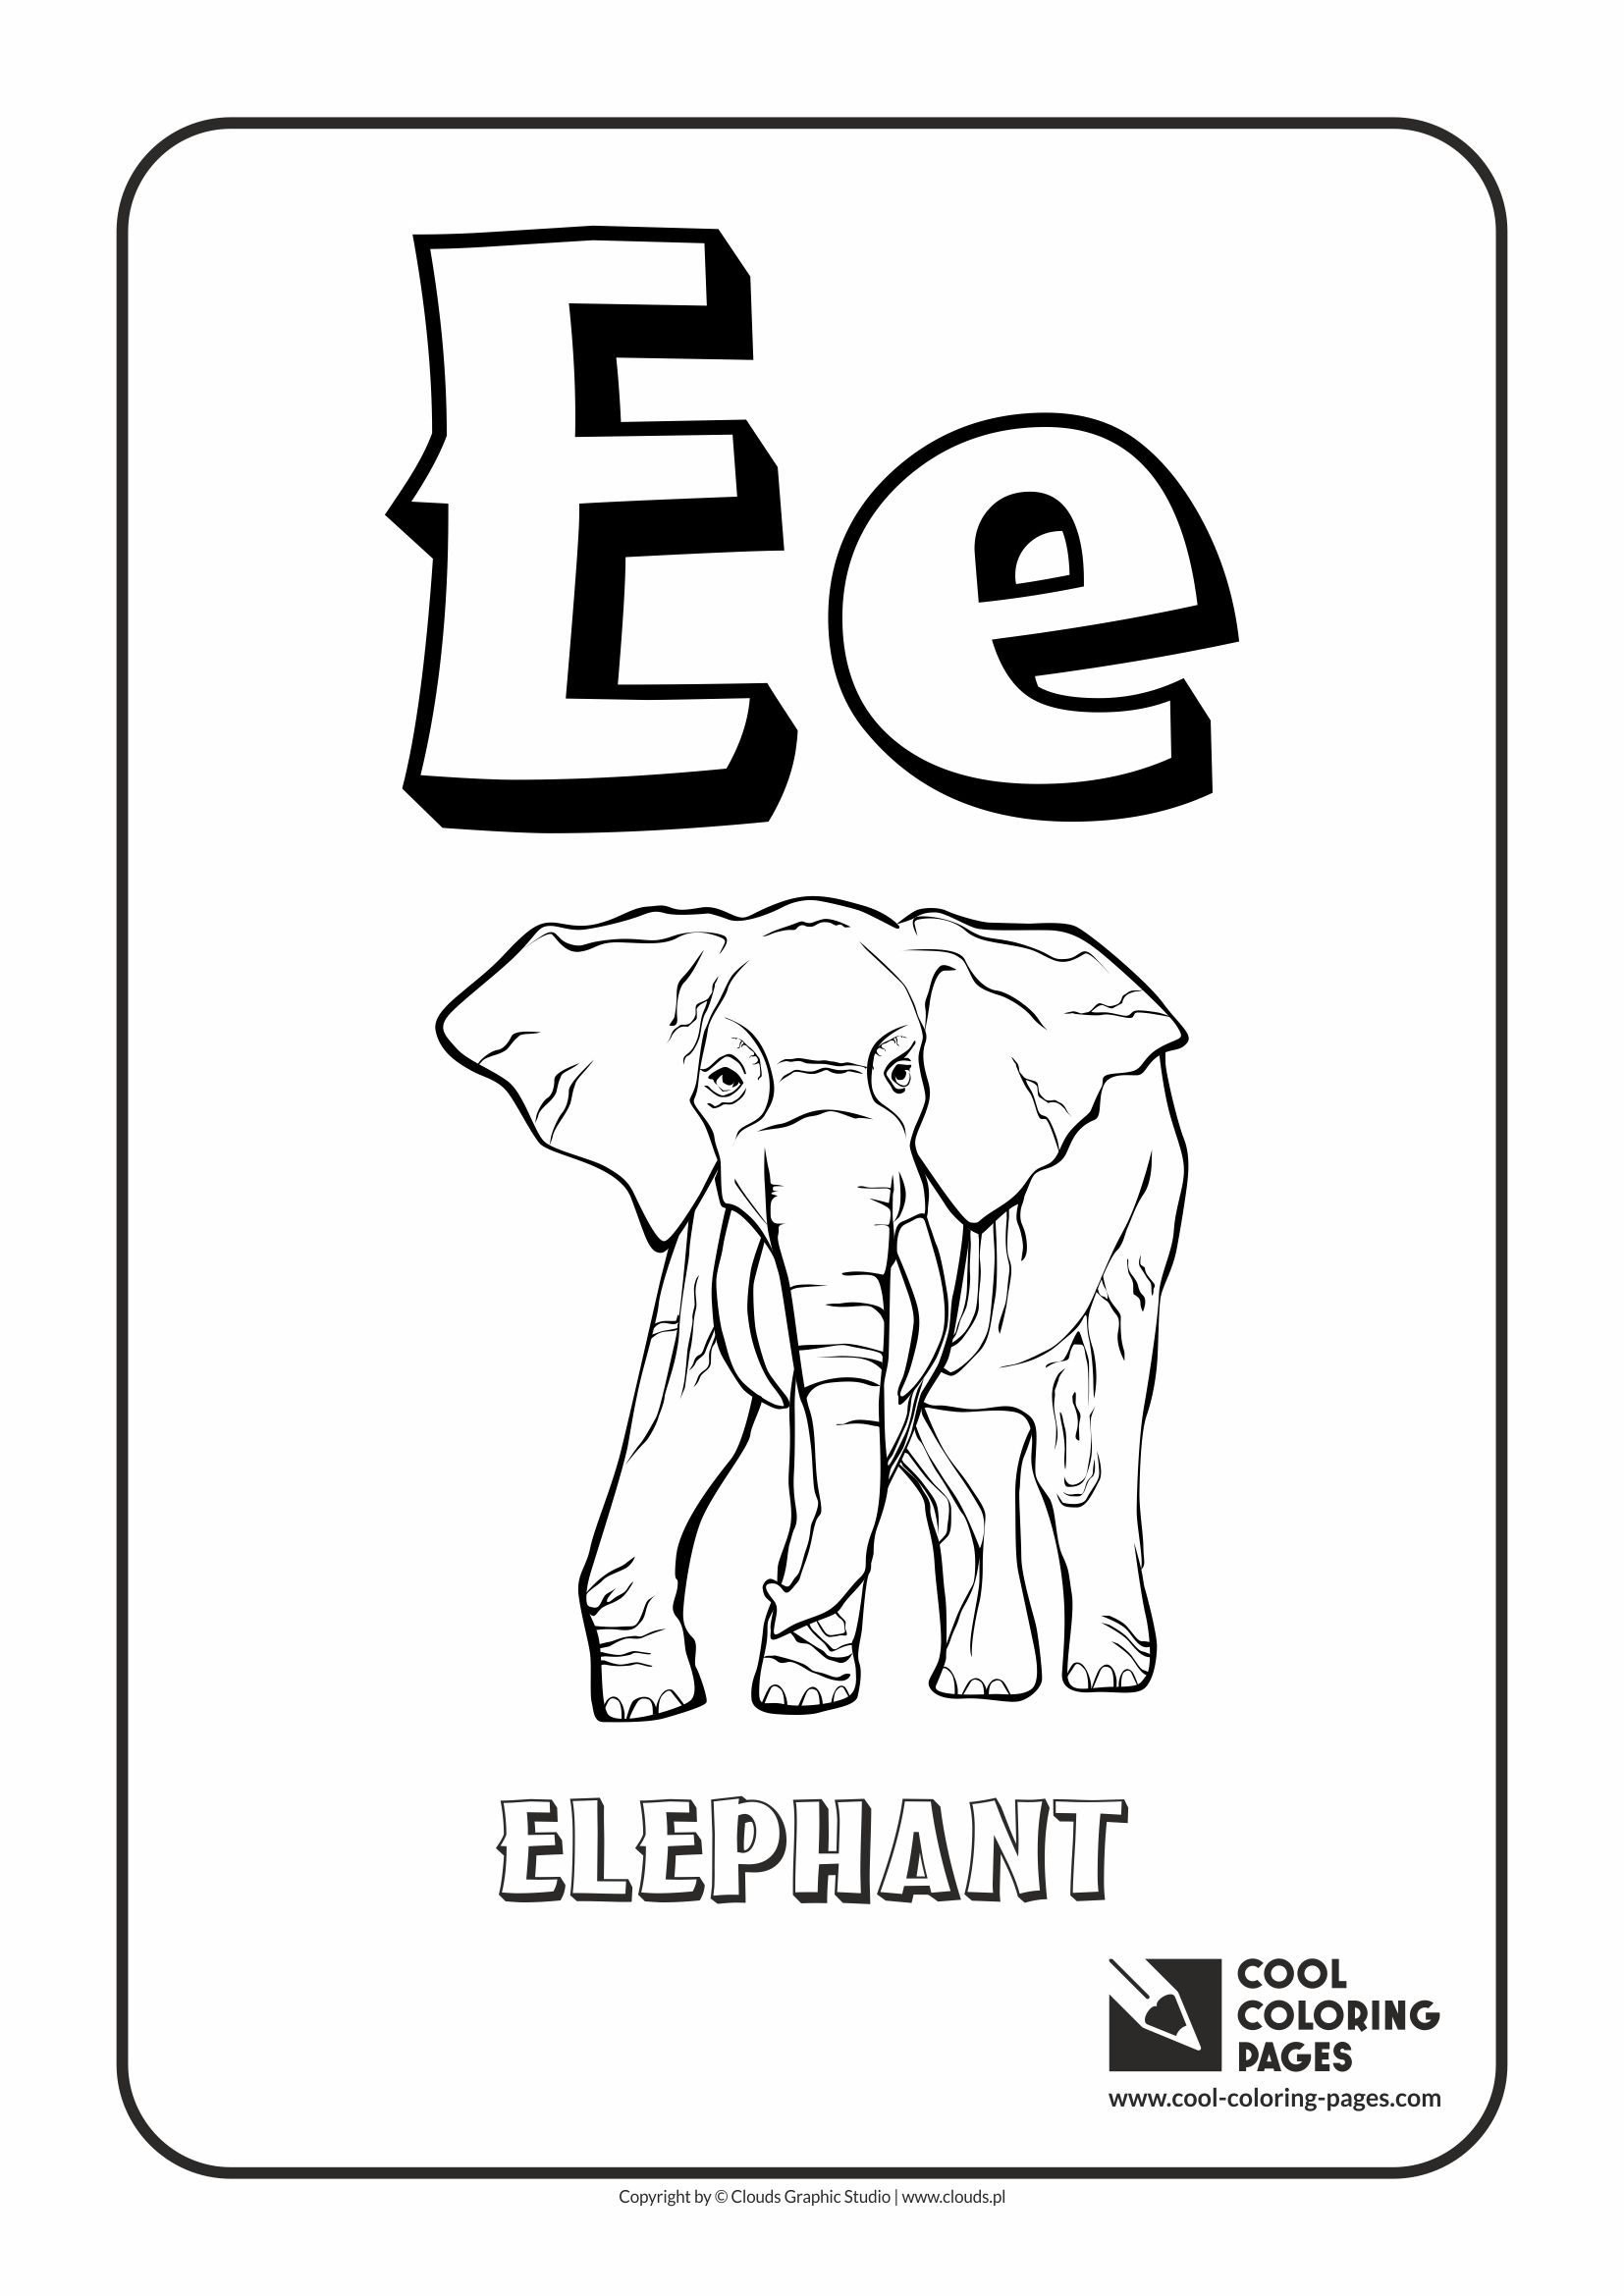 Coloring pages for alphabet - Cool Coloring Pages Alphabet Letter E Coloring Page With Letter E